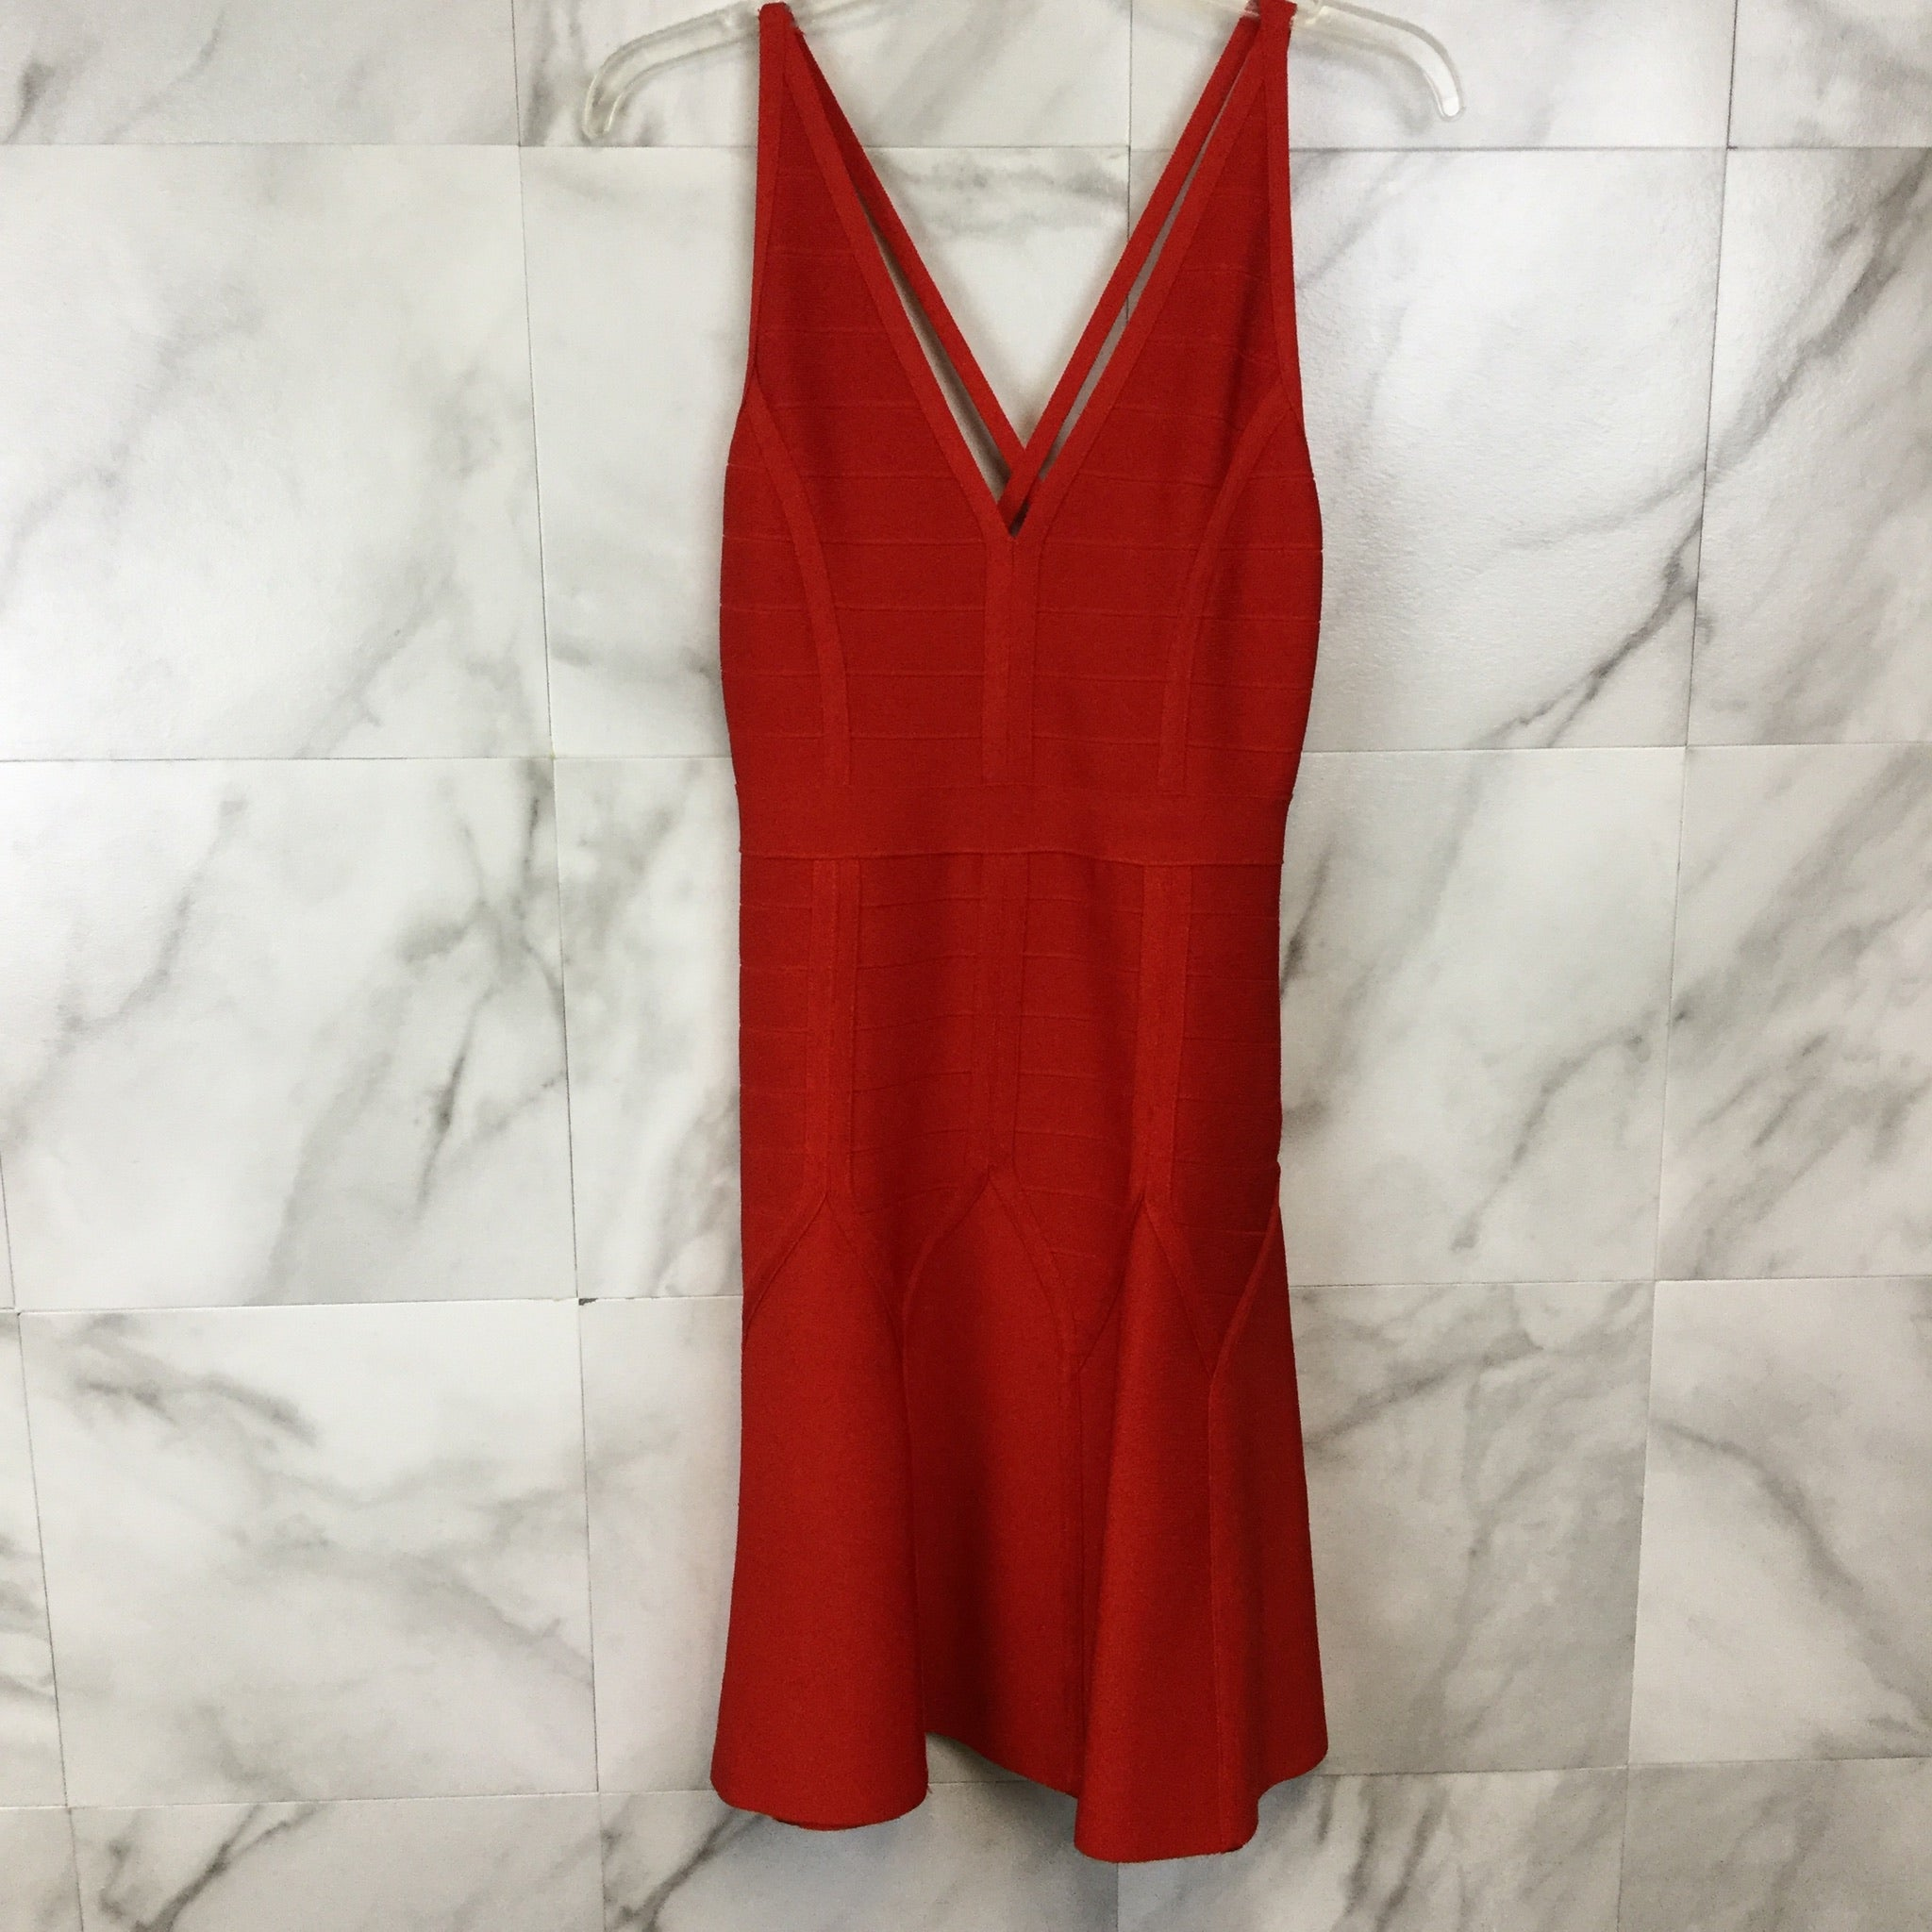 Topshop Bandage Skater Dress - size 6